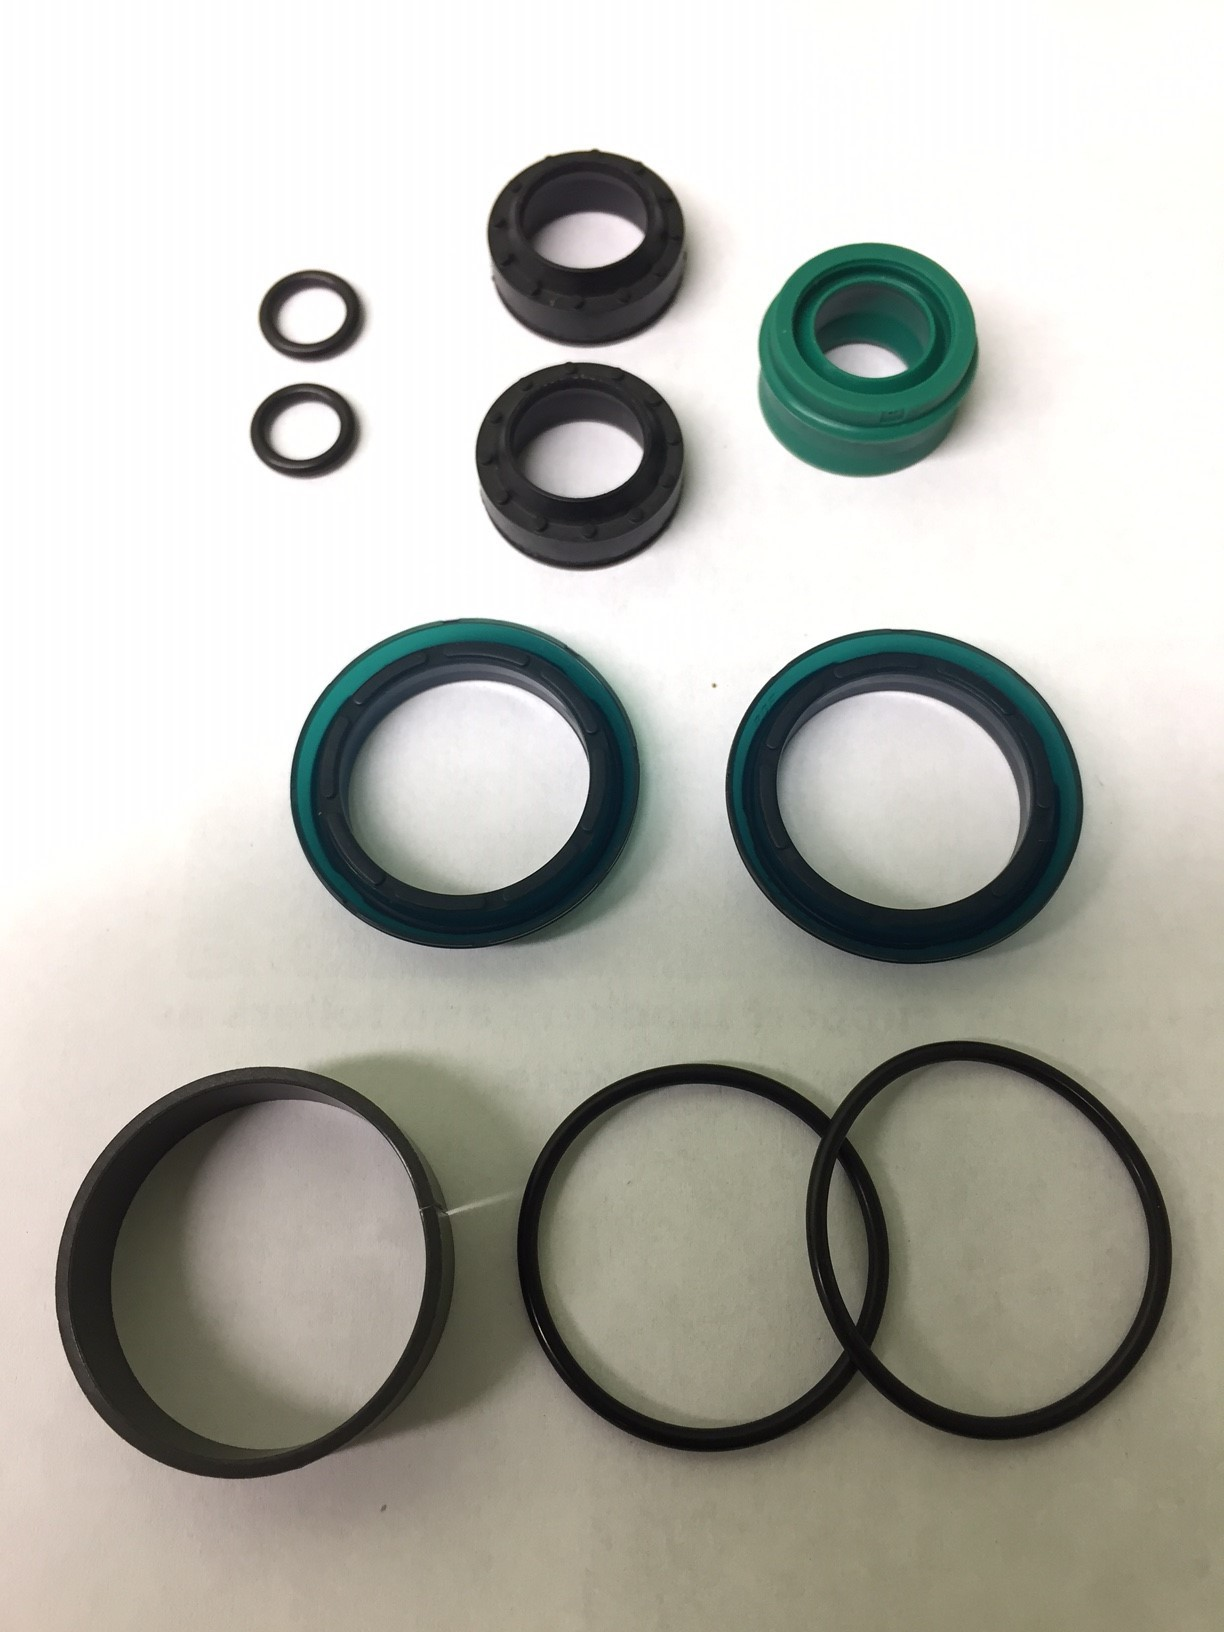 Cylinder Seal Repair Kit f/ Rapid Exit Stall - Small Entrance Gate